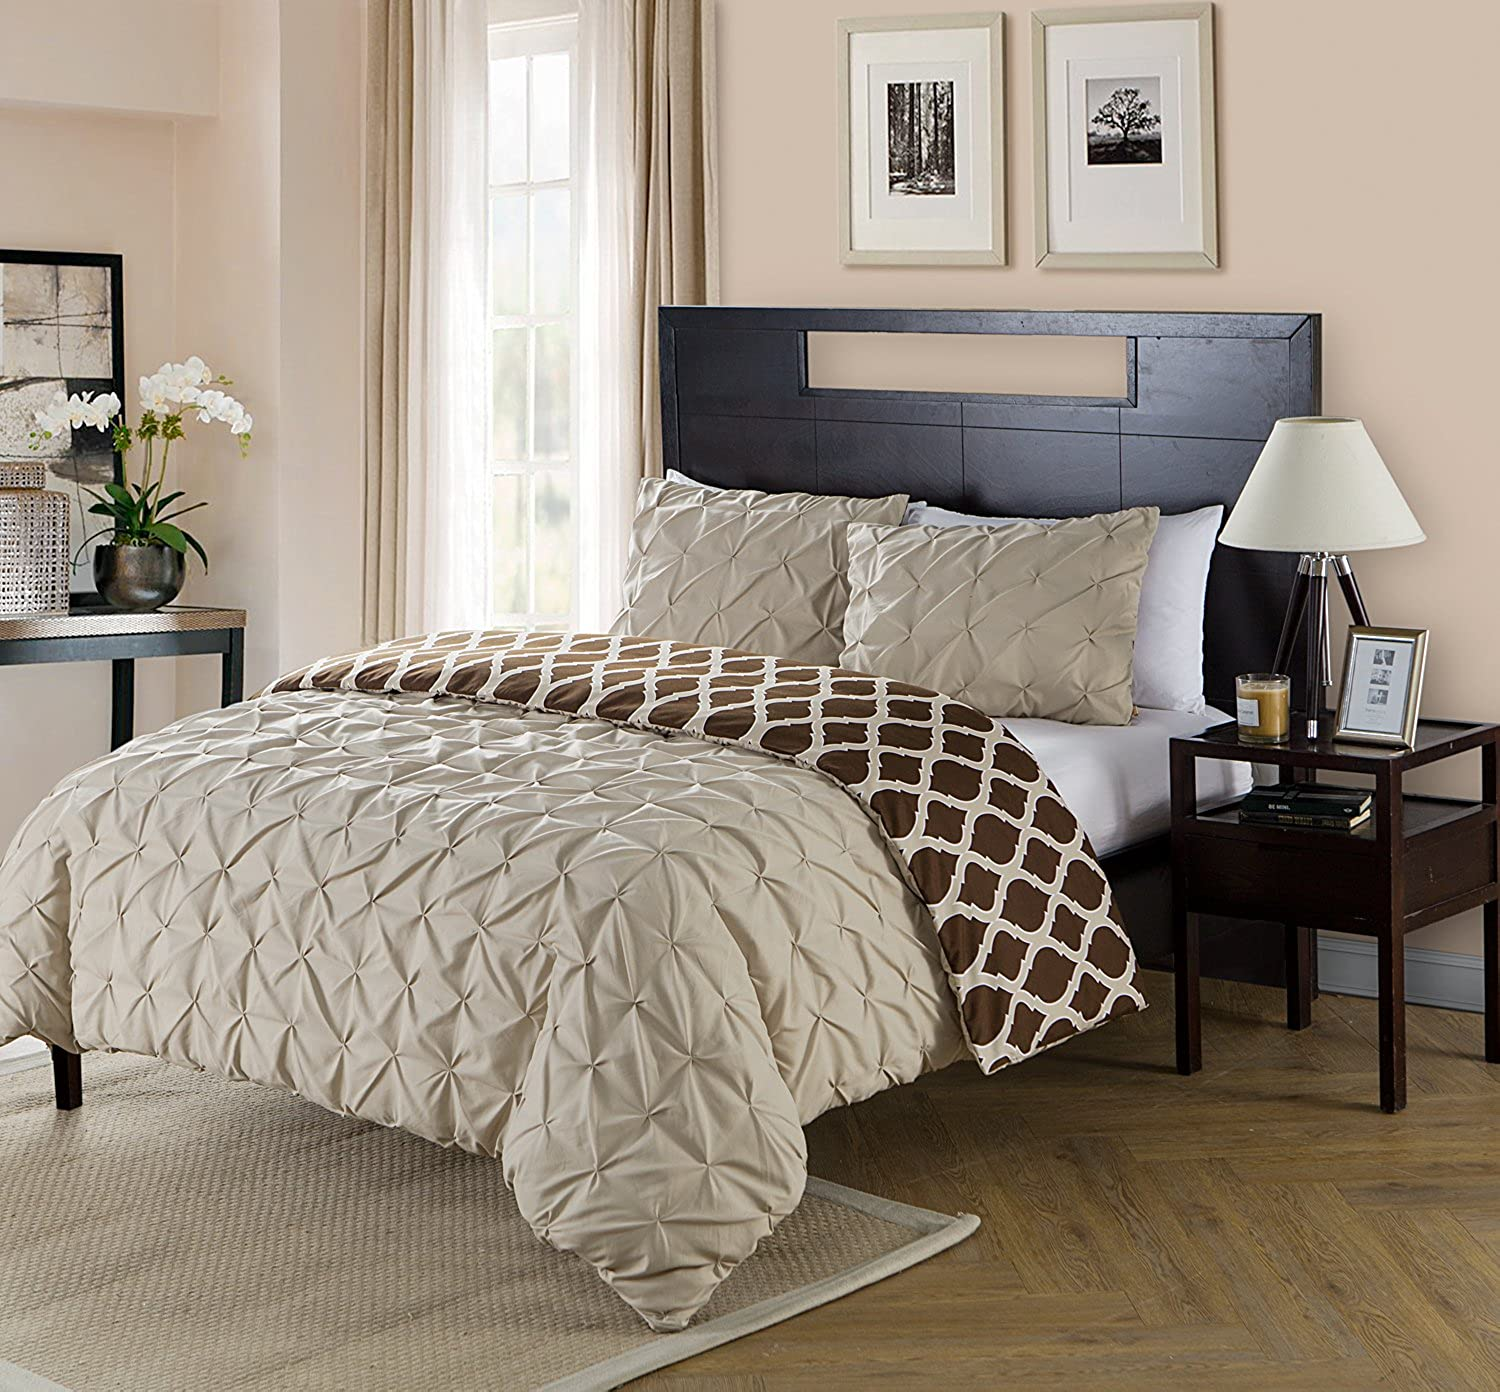 Queen Size Removable Duvet Cover Set Reversible in Taupe   Brown Pinched Pleat